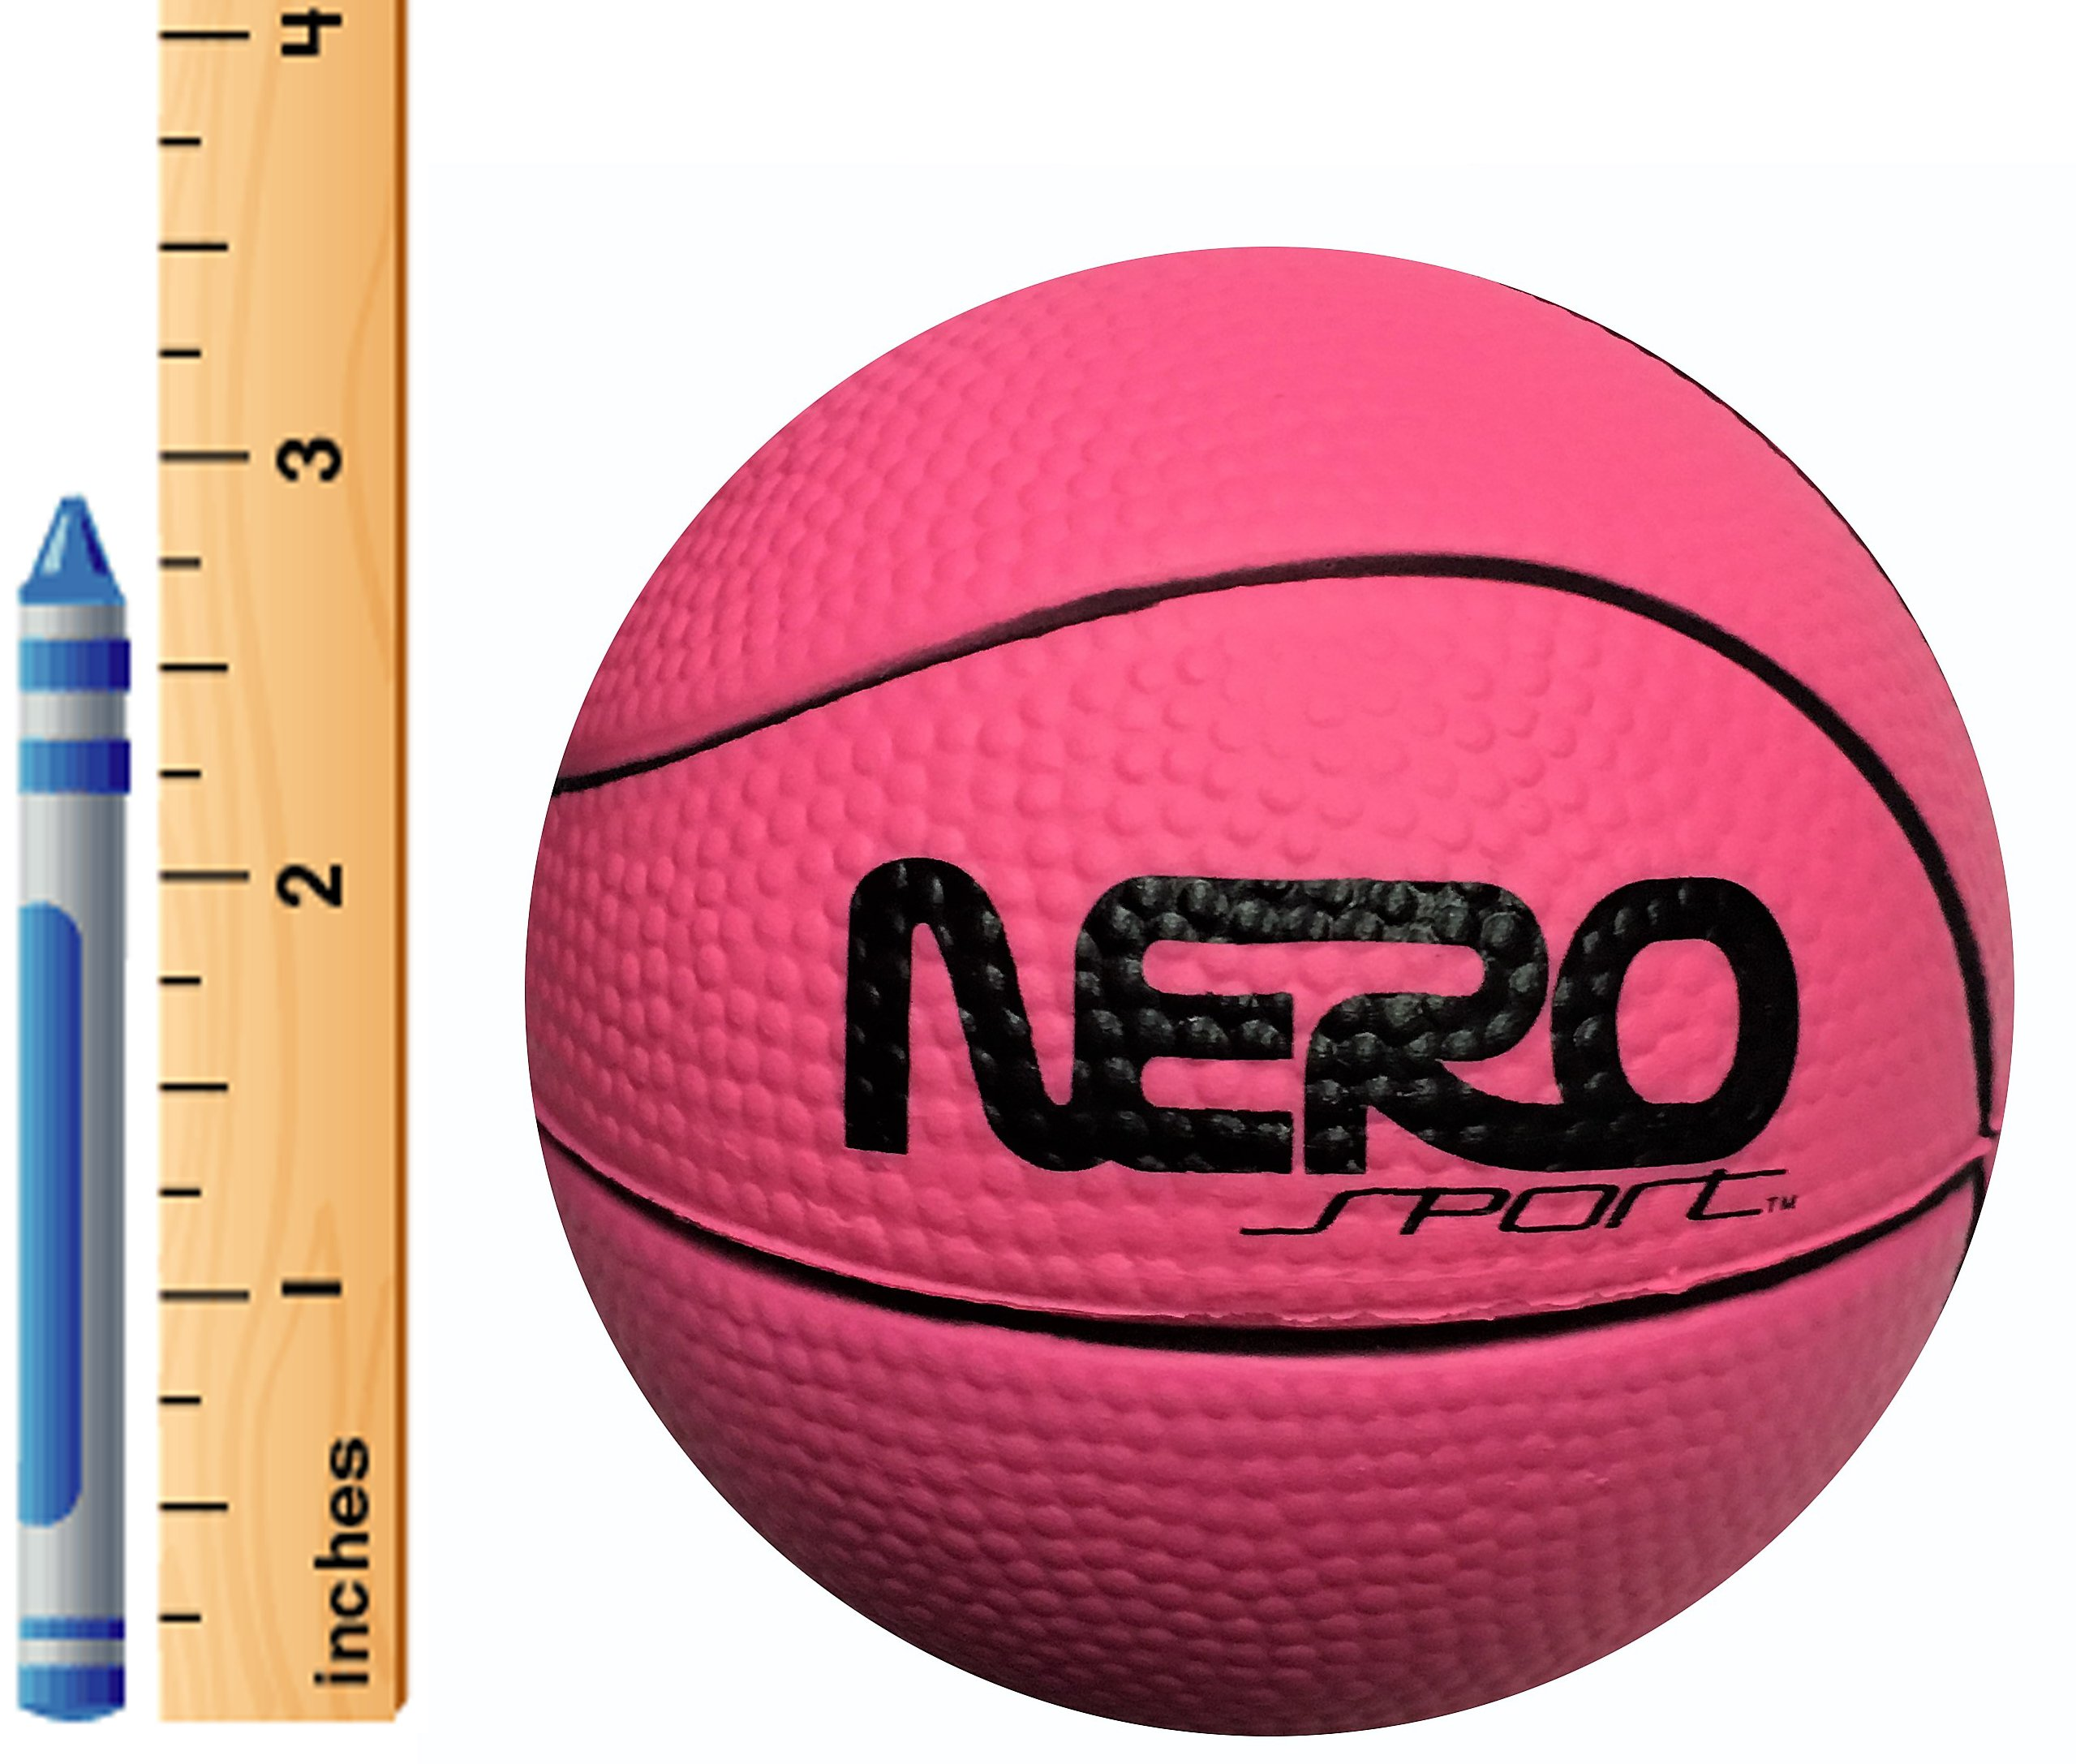 Nero NS200 High Bounce Rubber Mini Basketball 3.5'' Training Style Let Them Play Outside Great For Kids Streets Park Back Yard Agility Ball Gifts Wholesale Mini pro (Pink Basketball)